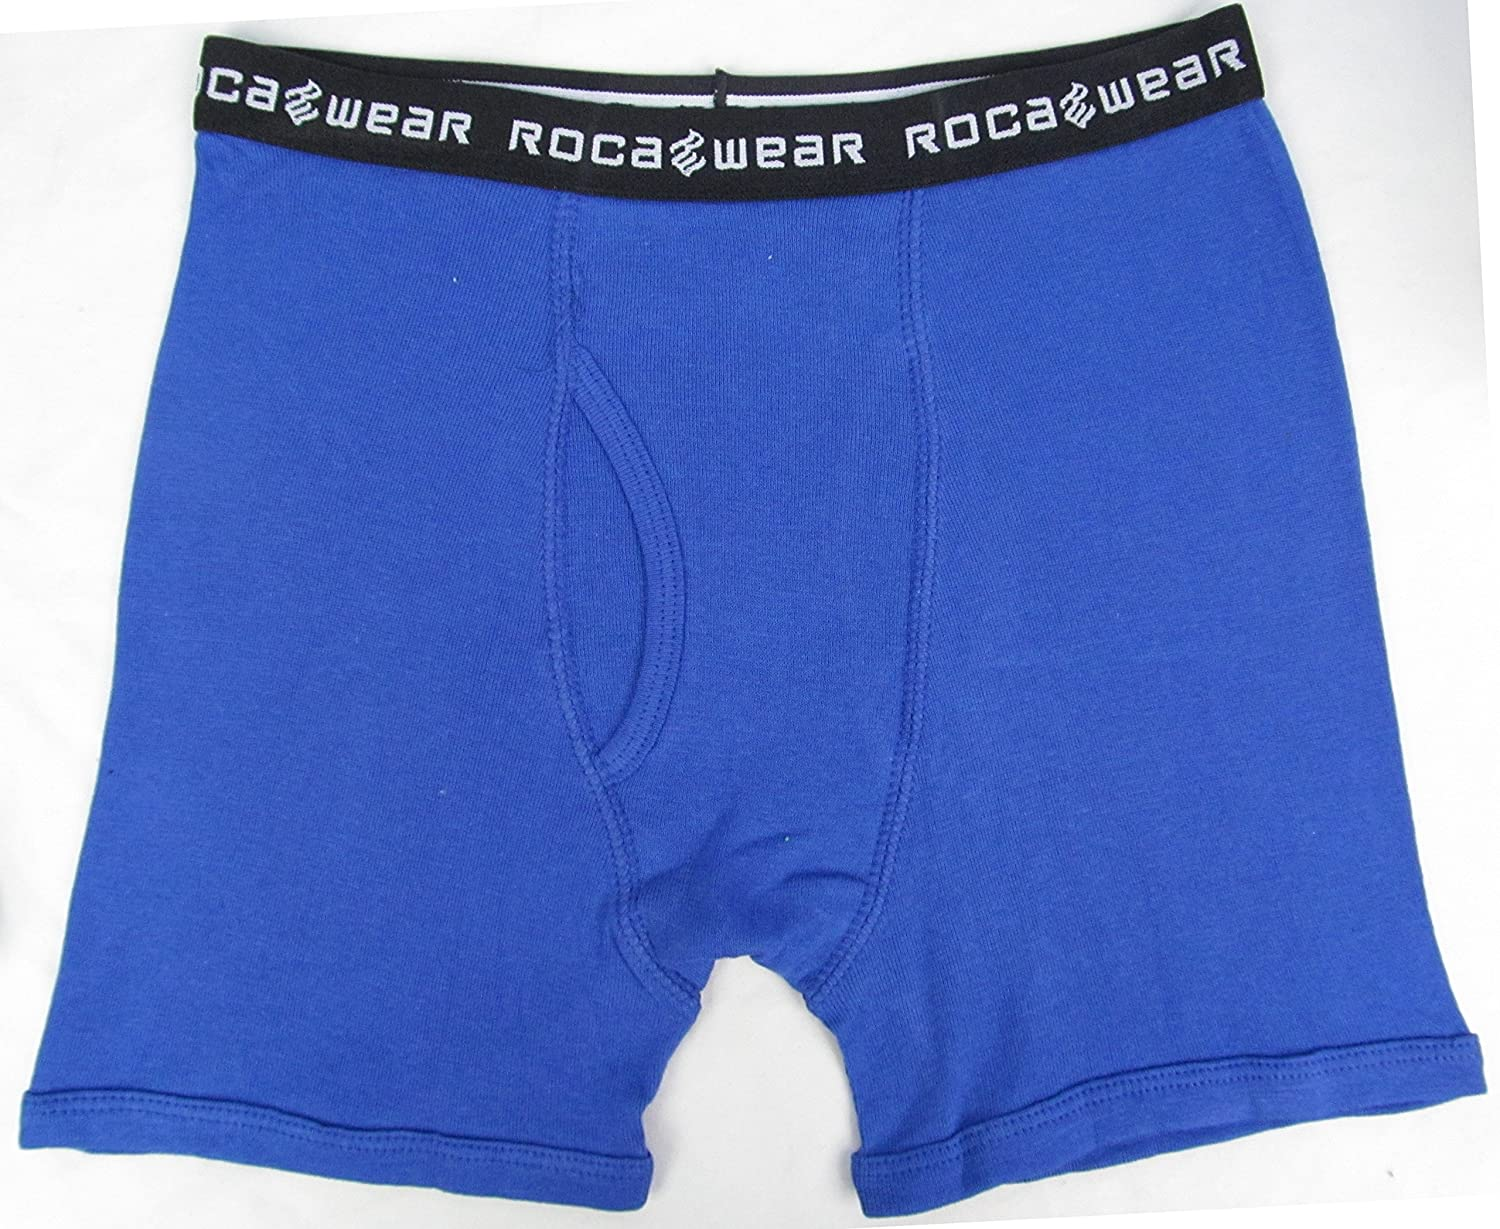 Rocawear Boy's 2-Pc or 4Pc/Pack Cotton Boxer Brief, (XS-L)